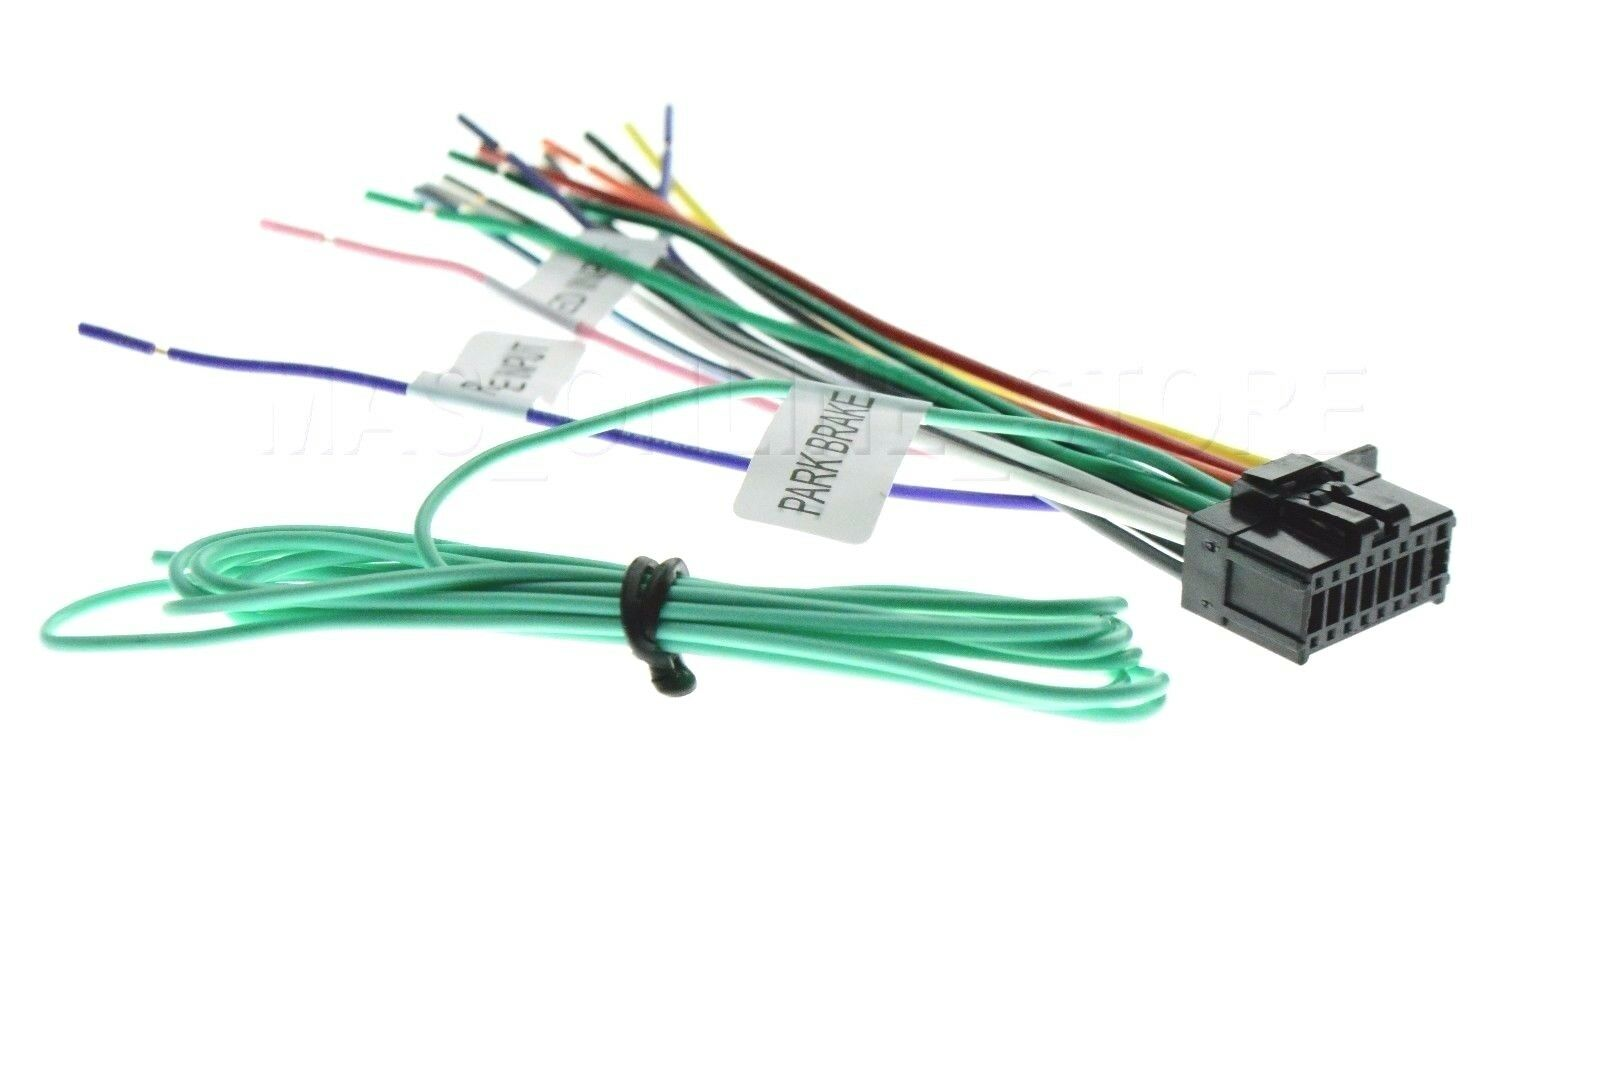 s l1600 wire harness for pioneer avic 5100nex avic5100nex ebay Pioneer Wiring Harness Diagram at n-0.co